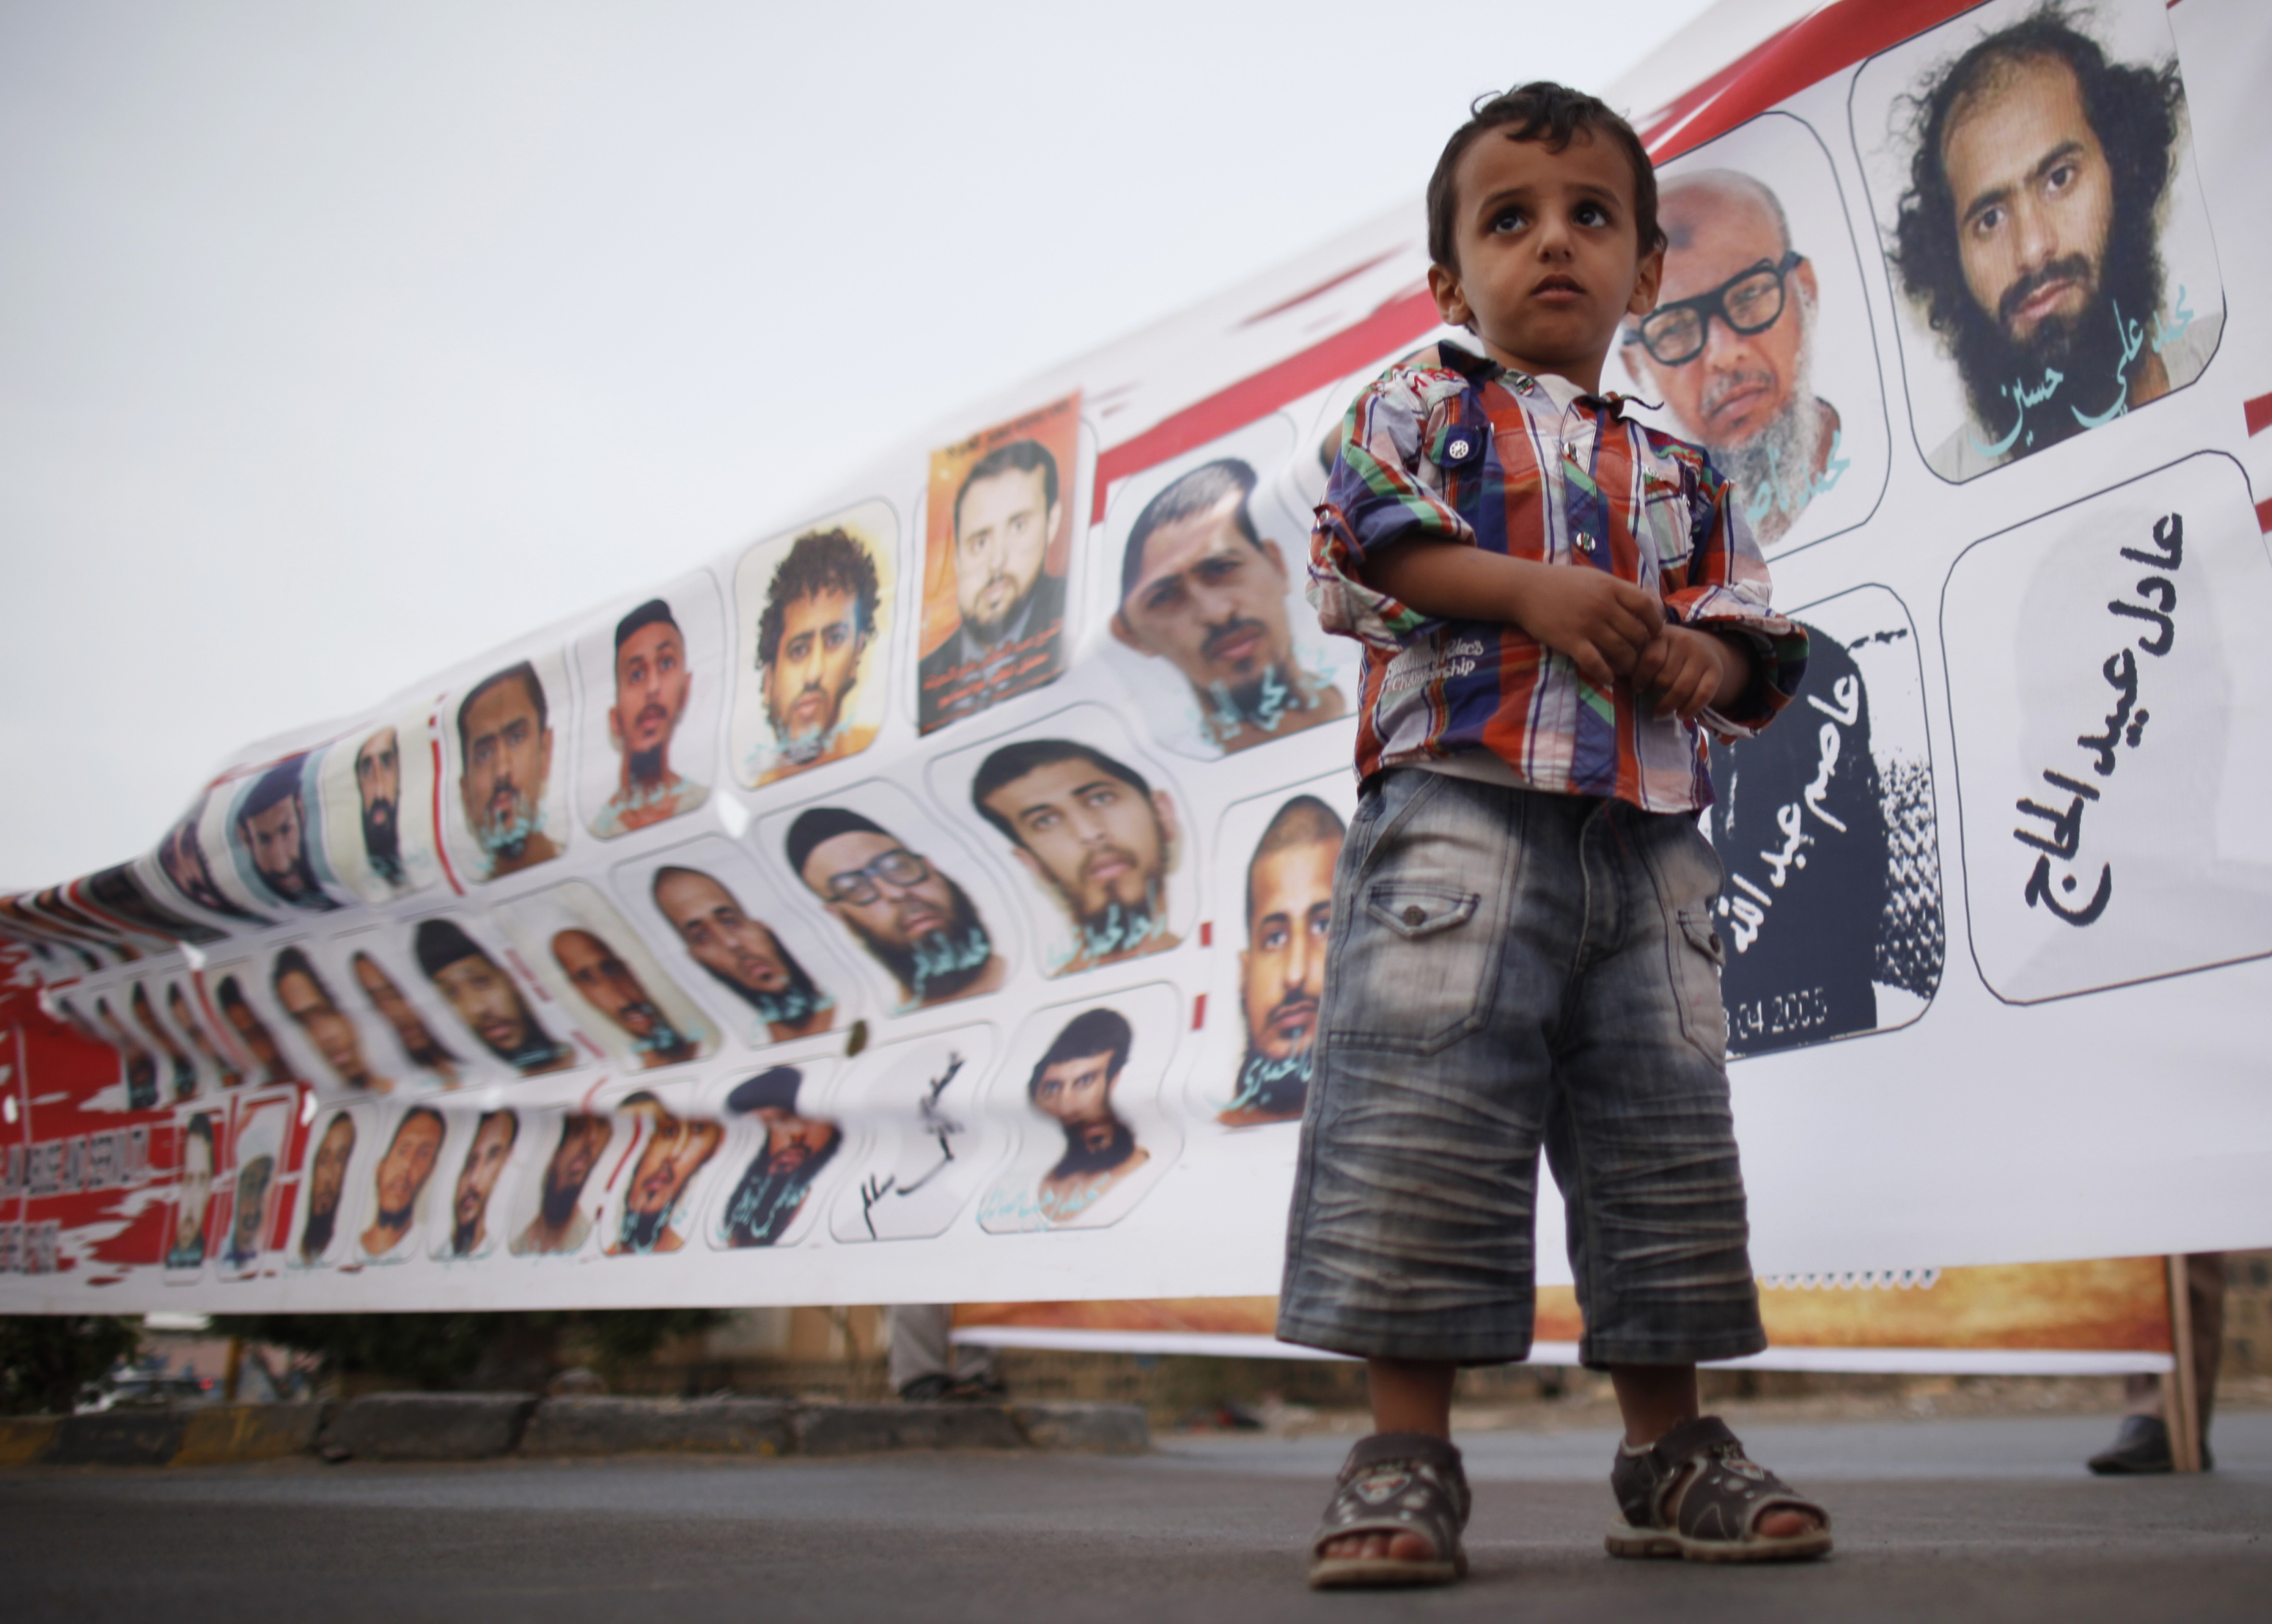 A boy stands outside the U.S. embassy in Sanaa in front of pictures depicting Yemeni detainees at Guantanamo Bay prison during a protest demanding the release of the detainees on July 21, 2013. Six Yemenis will be transferred to Oman today from Guantanamo, continuing President Obama's campaign to close the prison. Photo by Khaled Abdullah Ali Al Mahd/Reuters